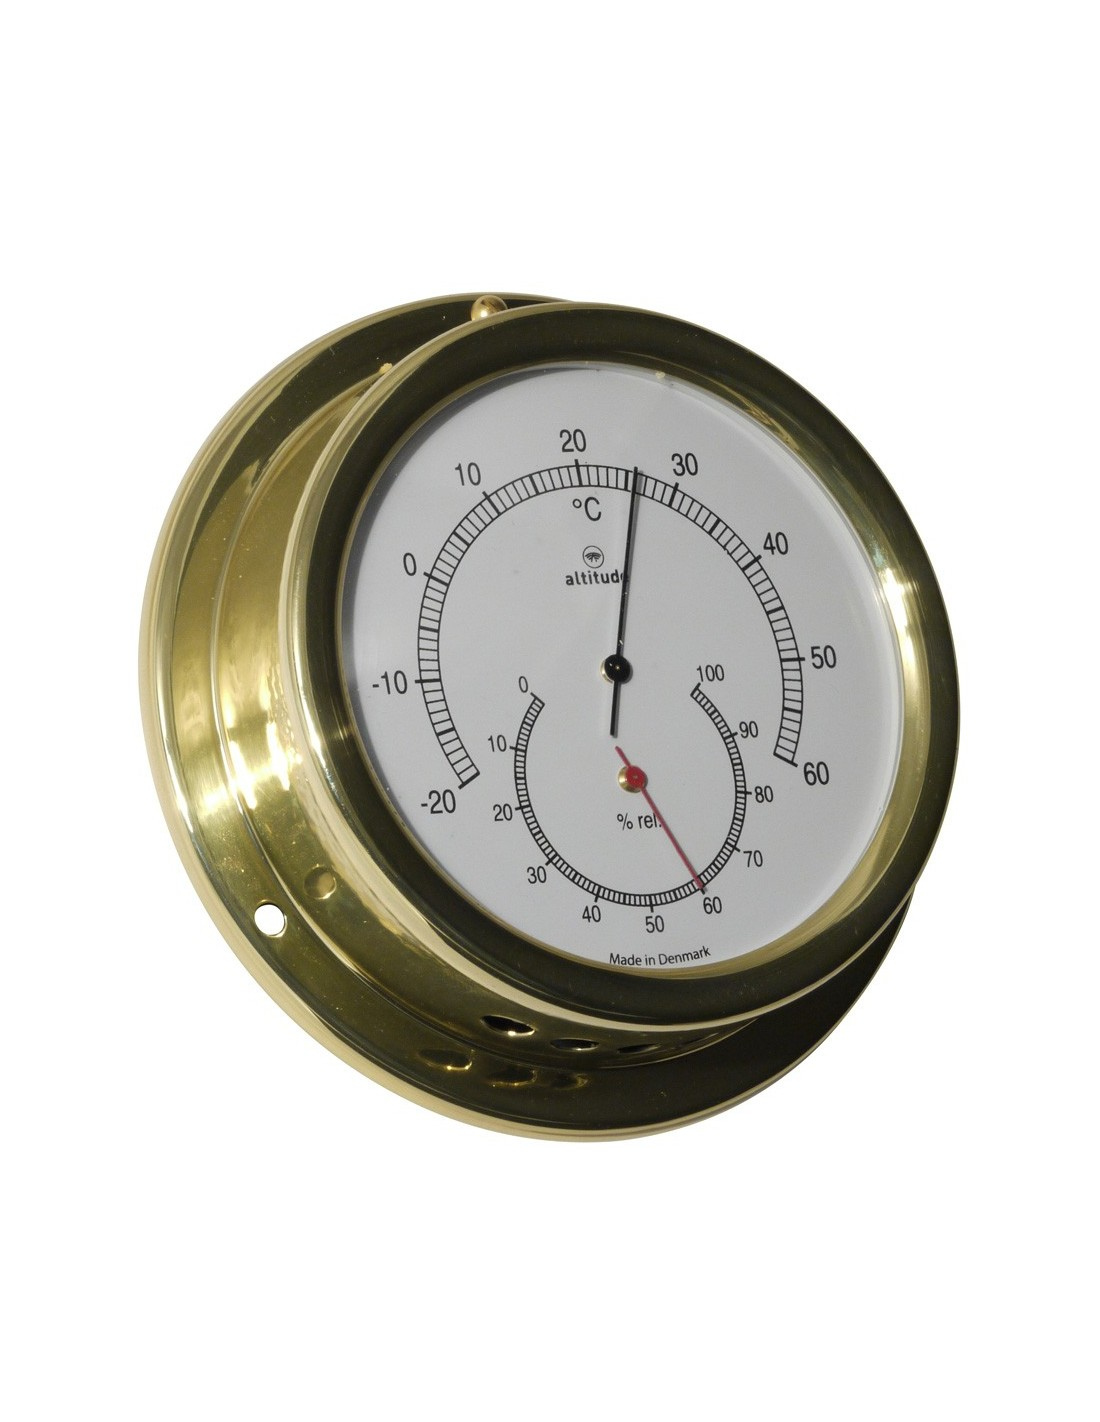 Thermometer / Hygrometer - 127 mm - Altitude - Scheepsinstrumenten - 858 TH